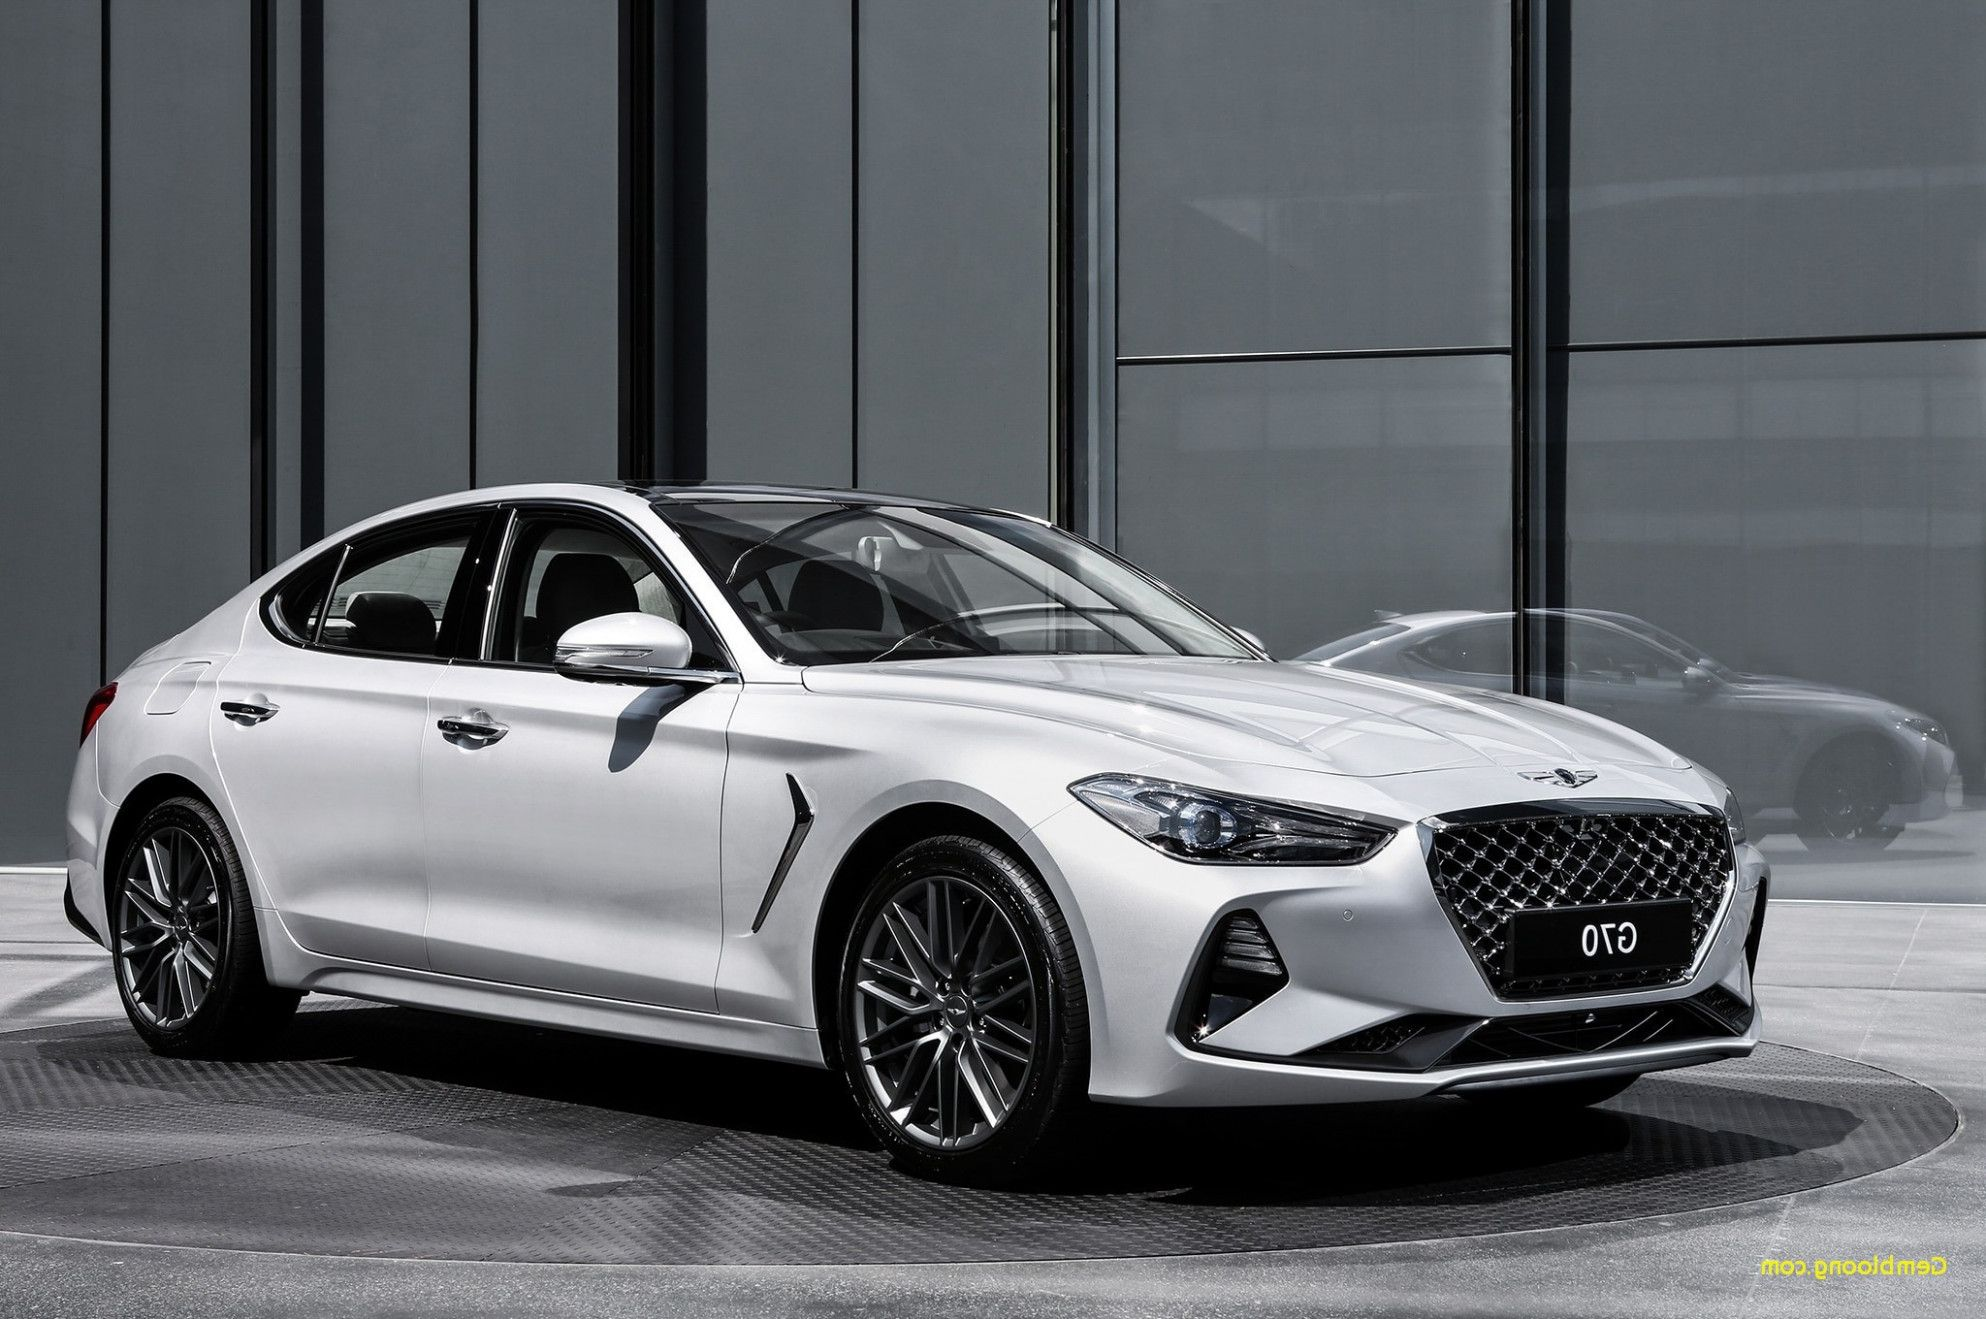 Five Things To Expect When Attending Hyundai Genesis 2020 Hyundai Genesis Hyundai Hyundai Genesis Coupe